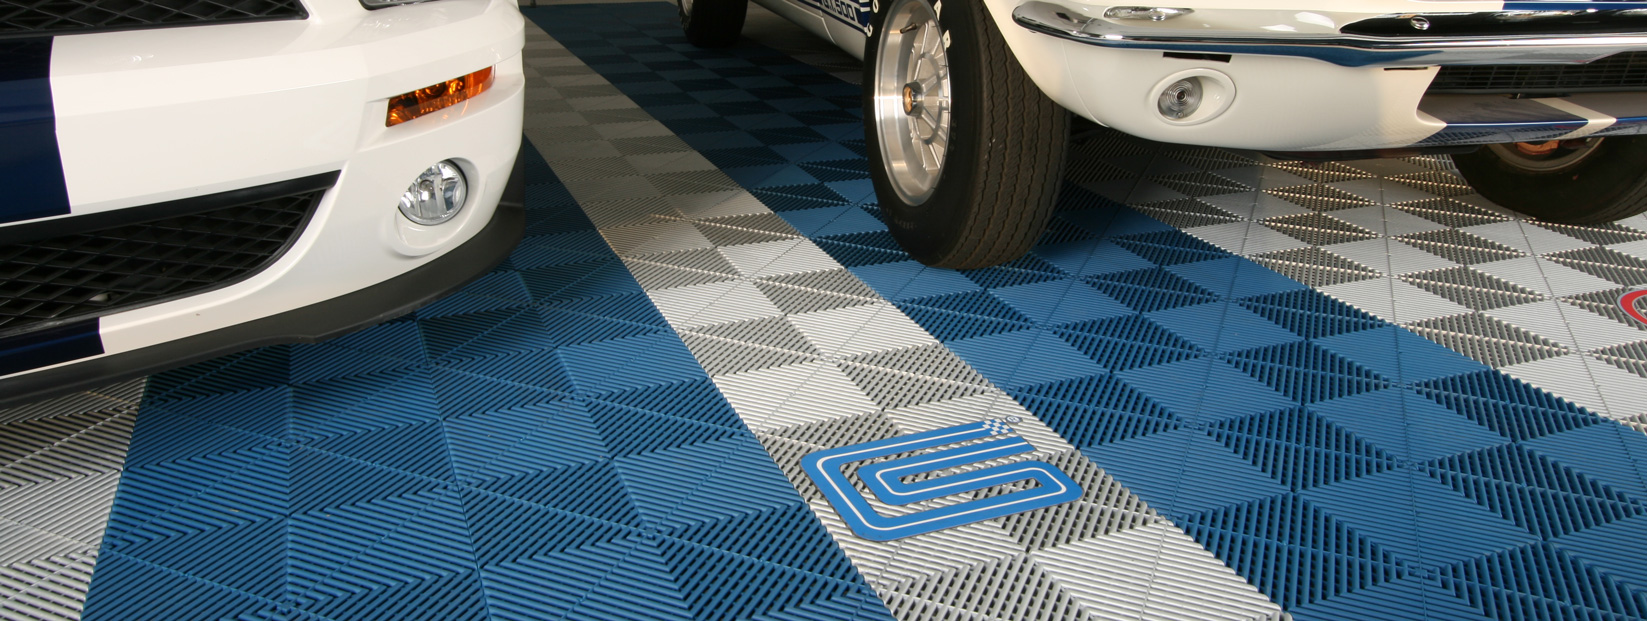 Flagstaff Garage Flooring